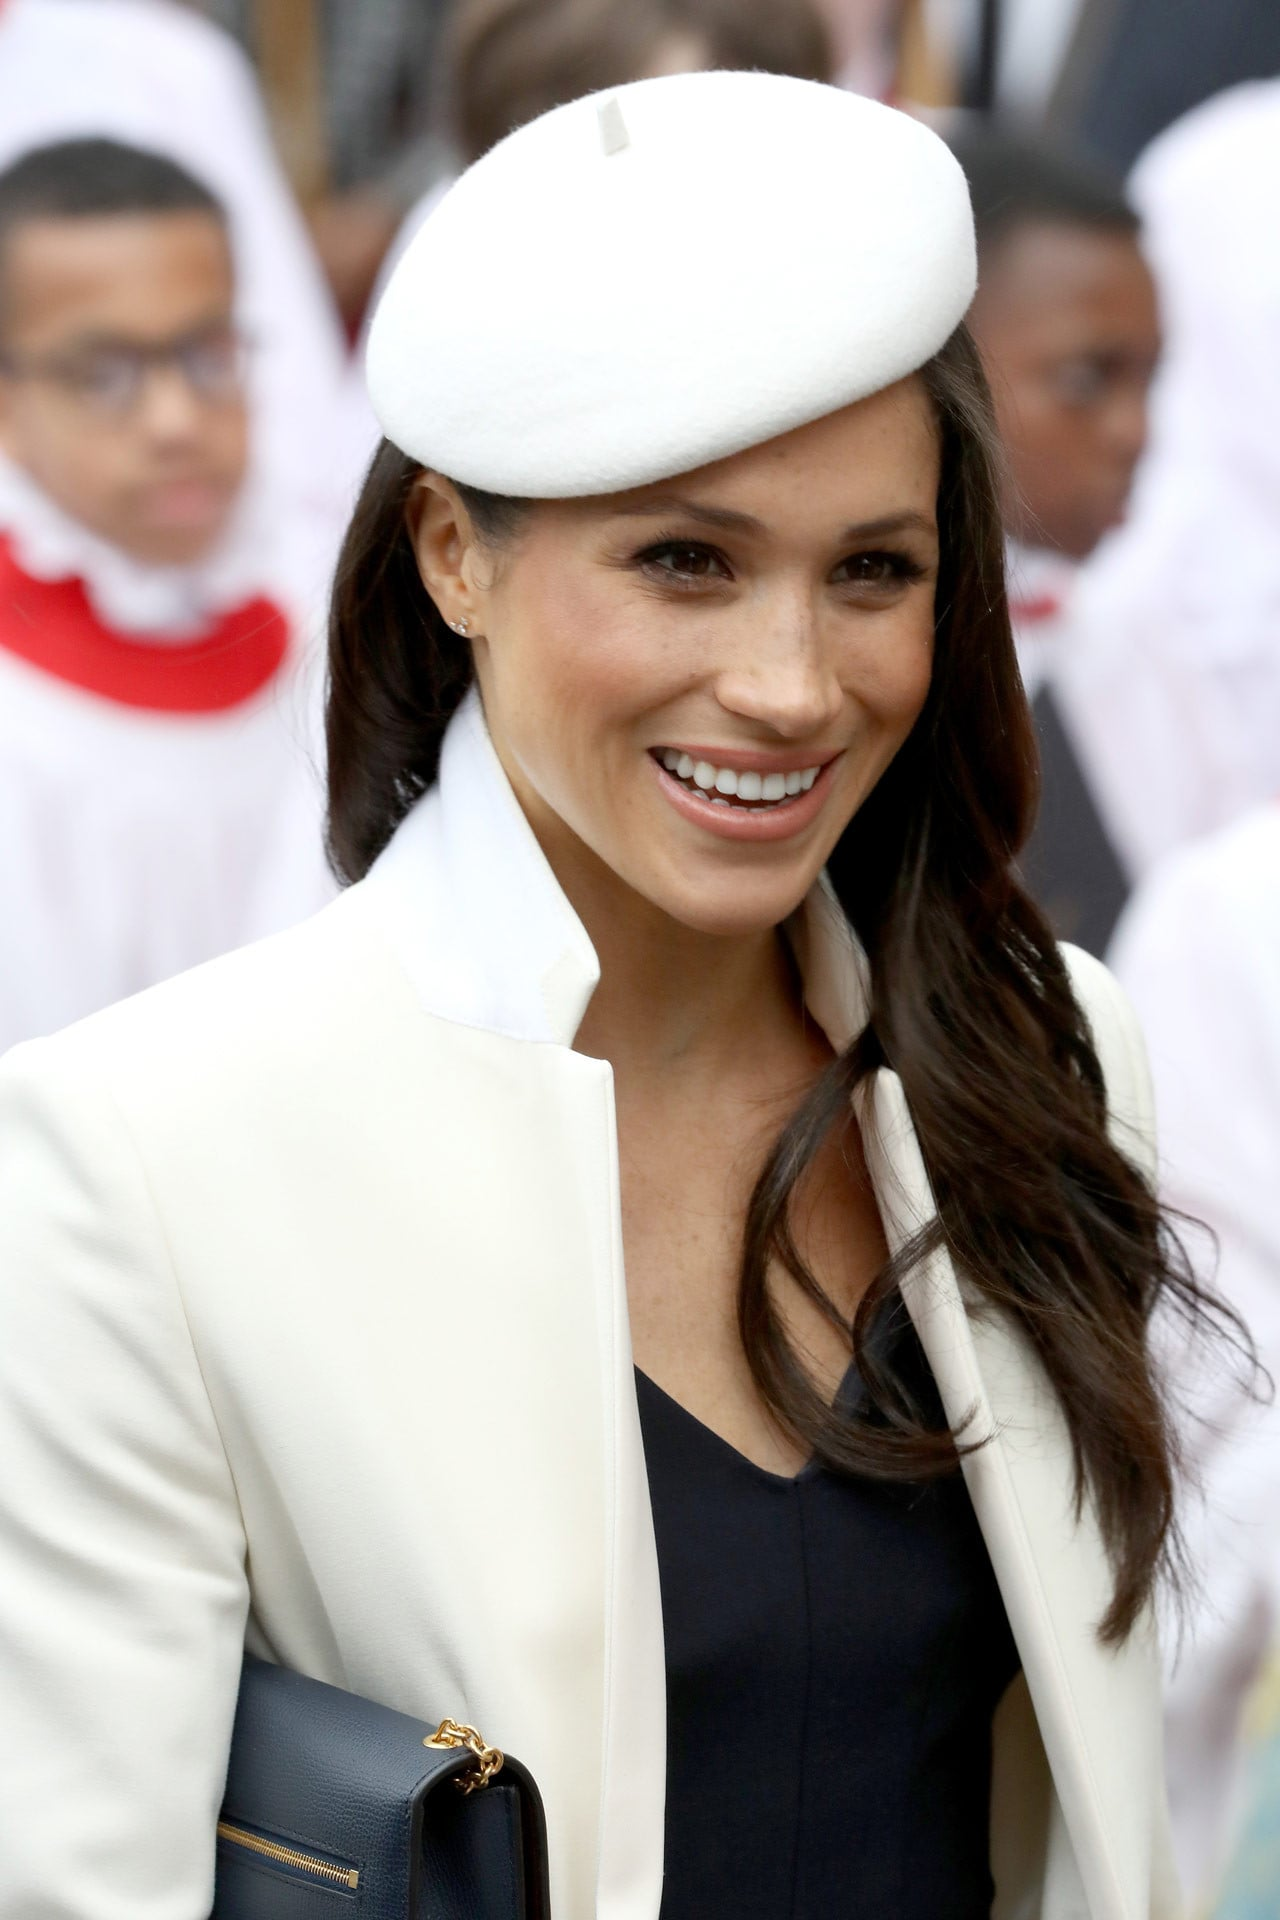 Will Meghan Markle play Meghan Markle in The Crown?